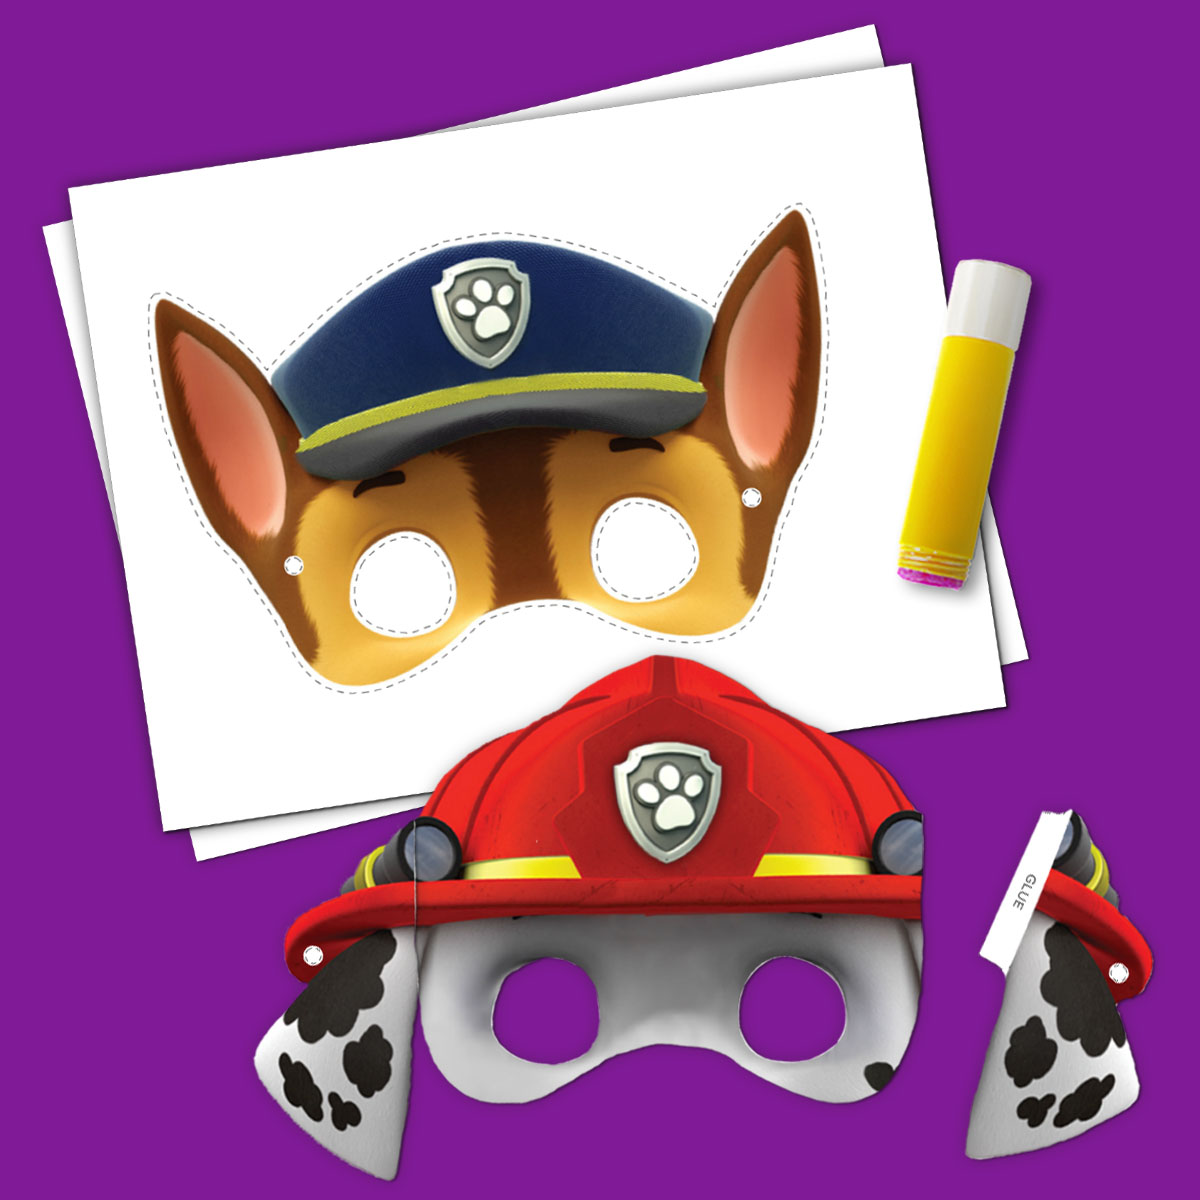 Paw patrol halloween clipart picture library library 5 PAW Patrol Halloween Printables | Nickelodeon Parents picture library library